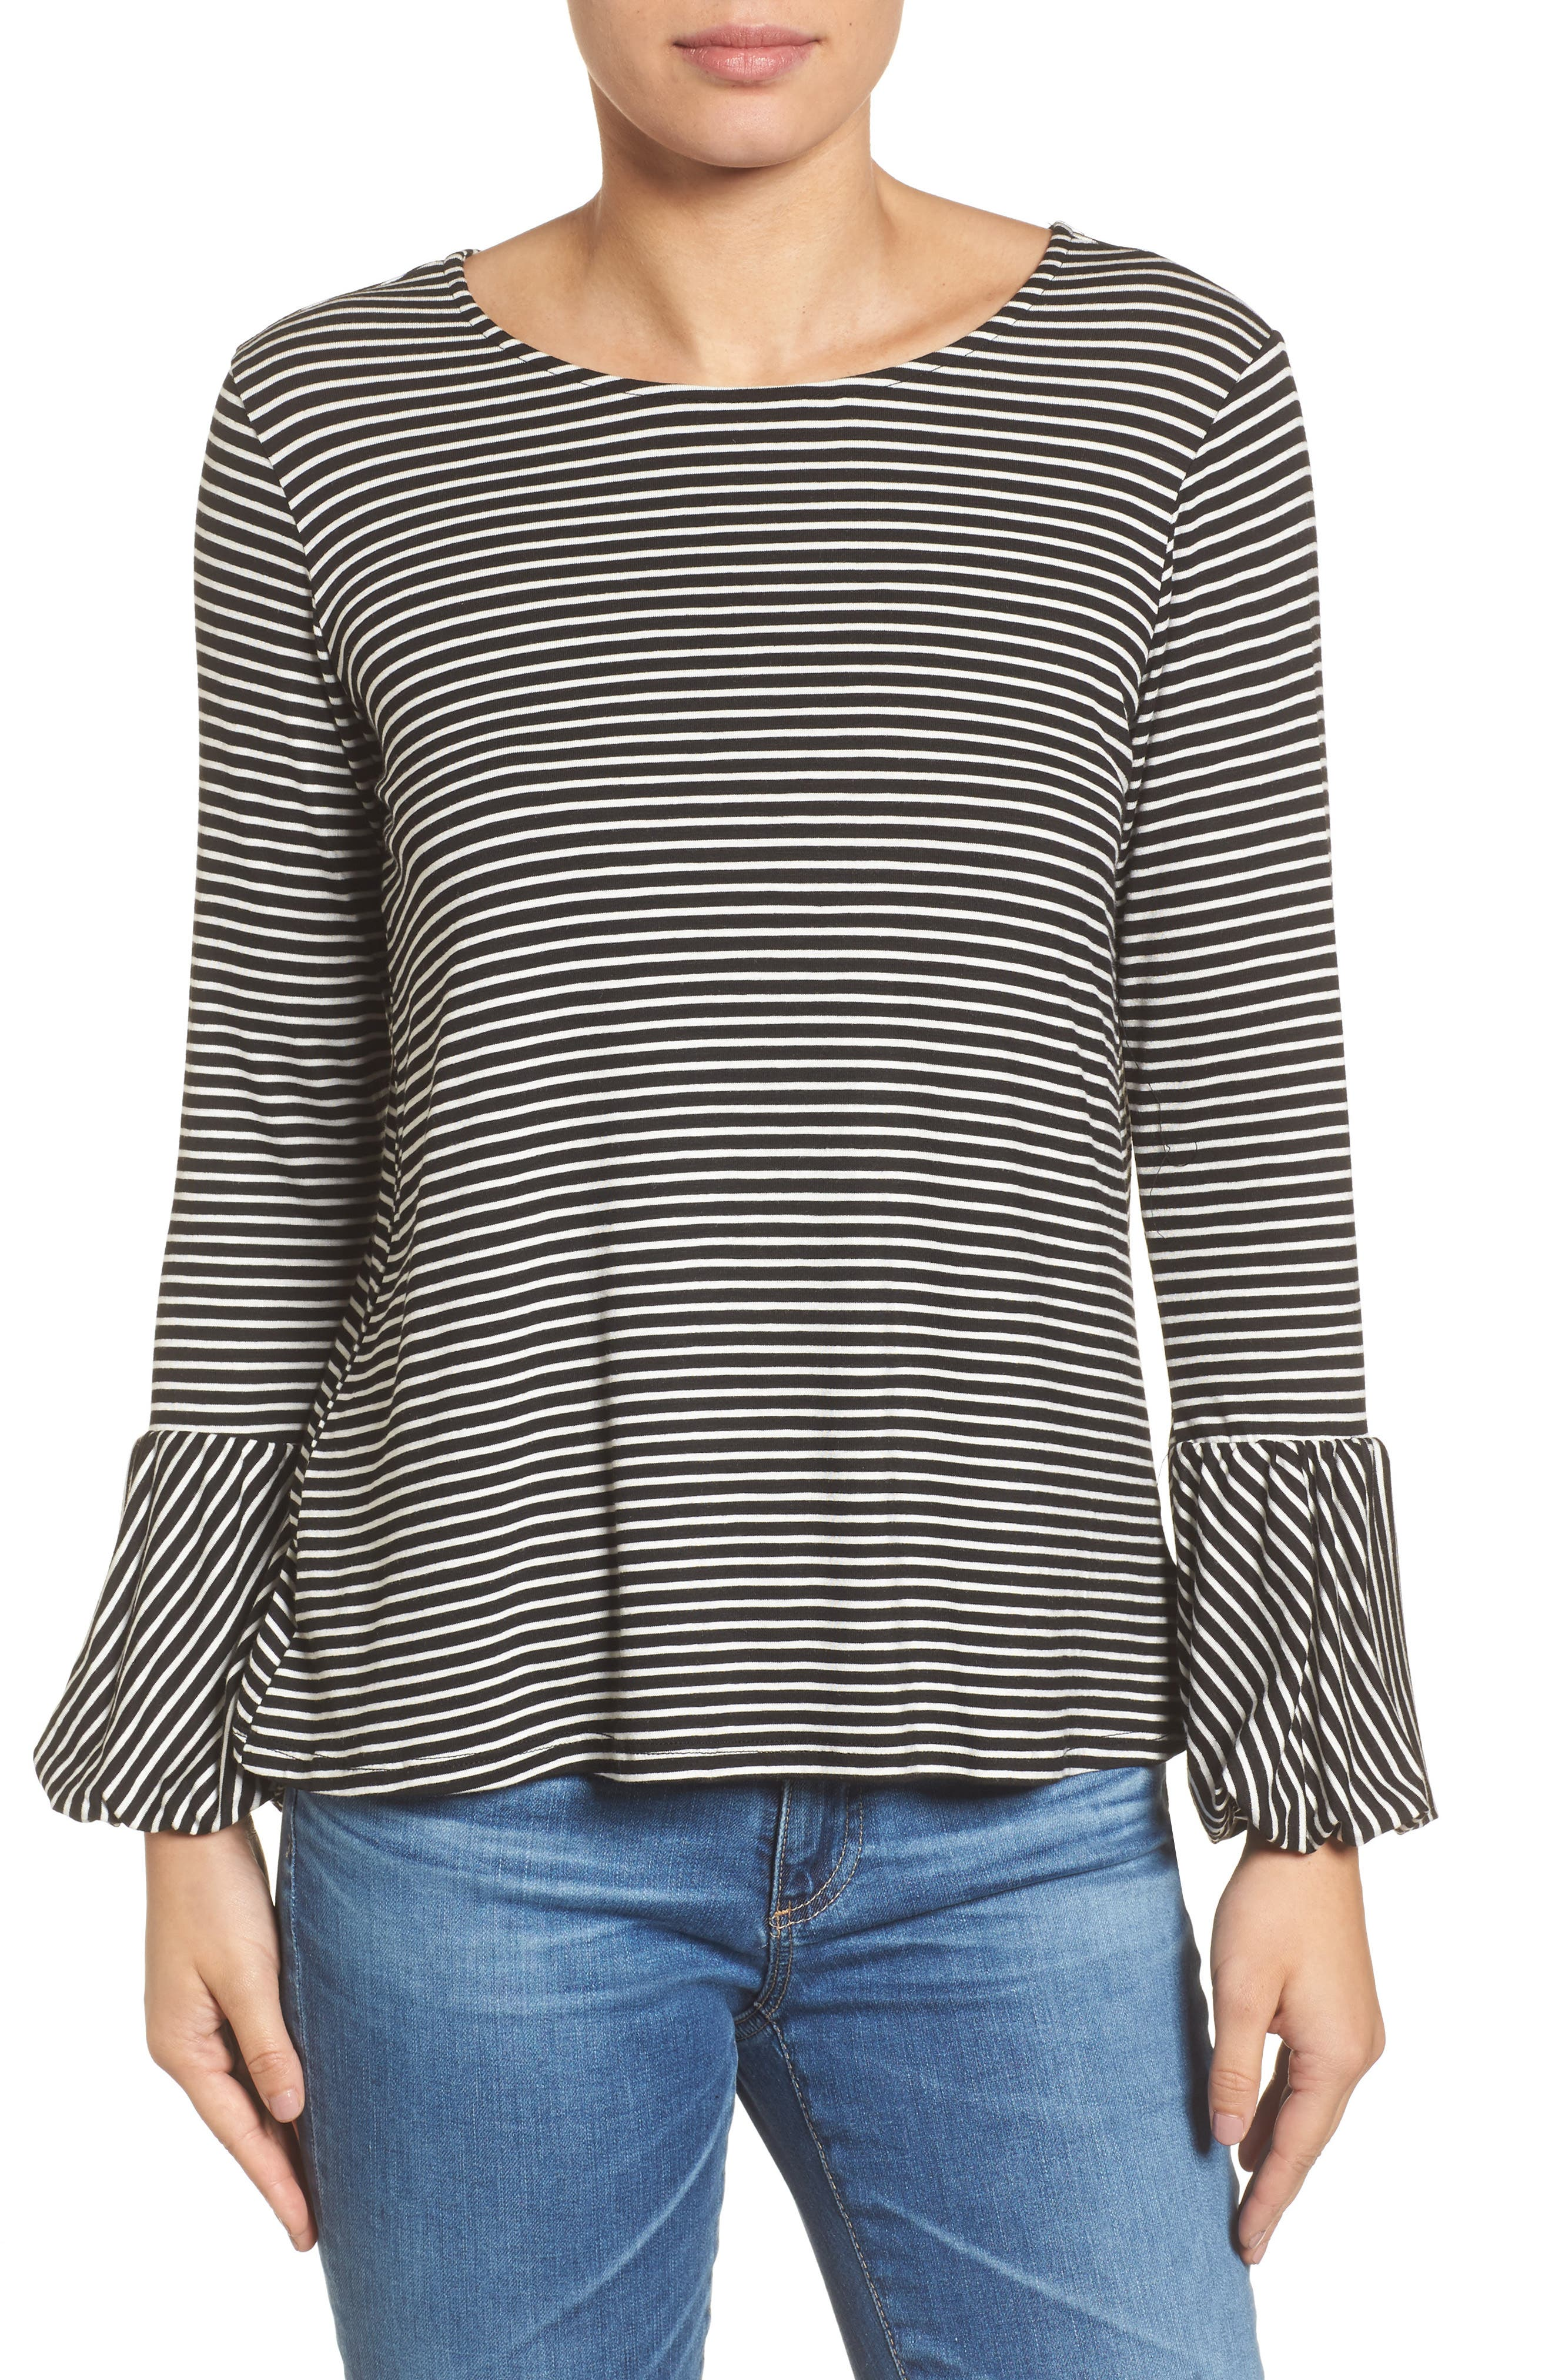 Bell Sleeve Top,                             Main thumbnail 1, color,                             003